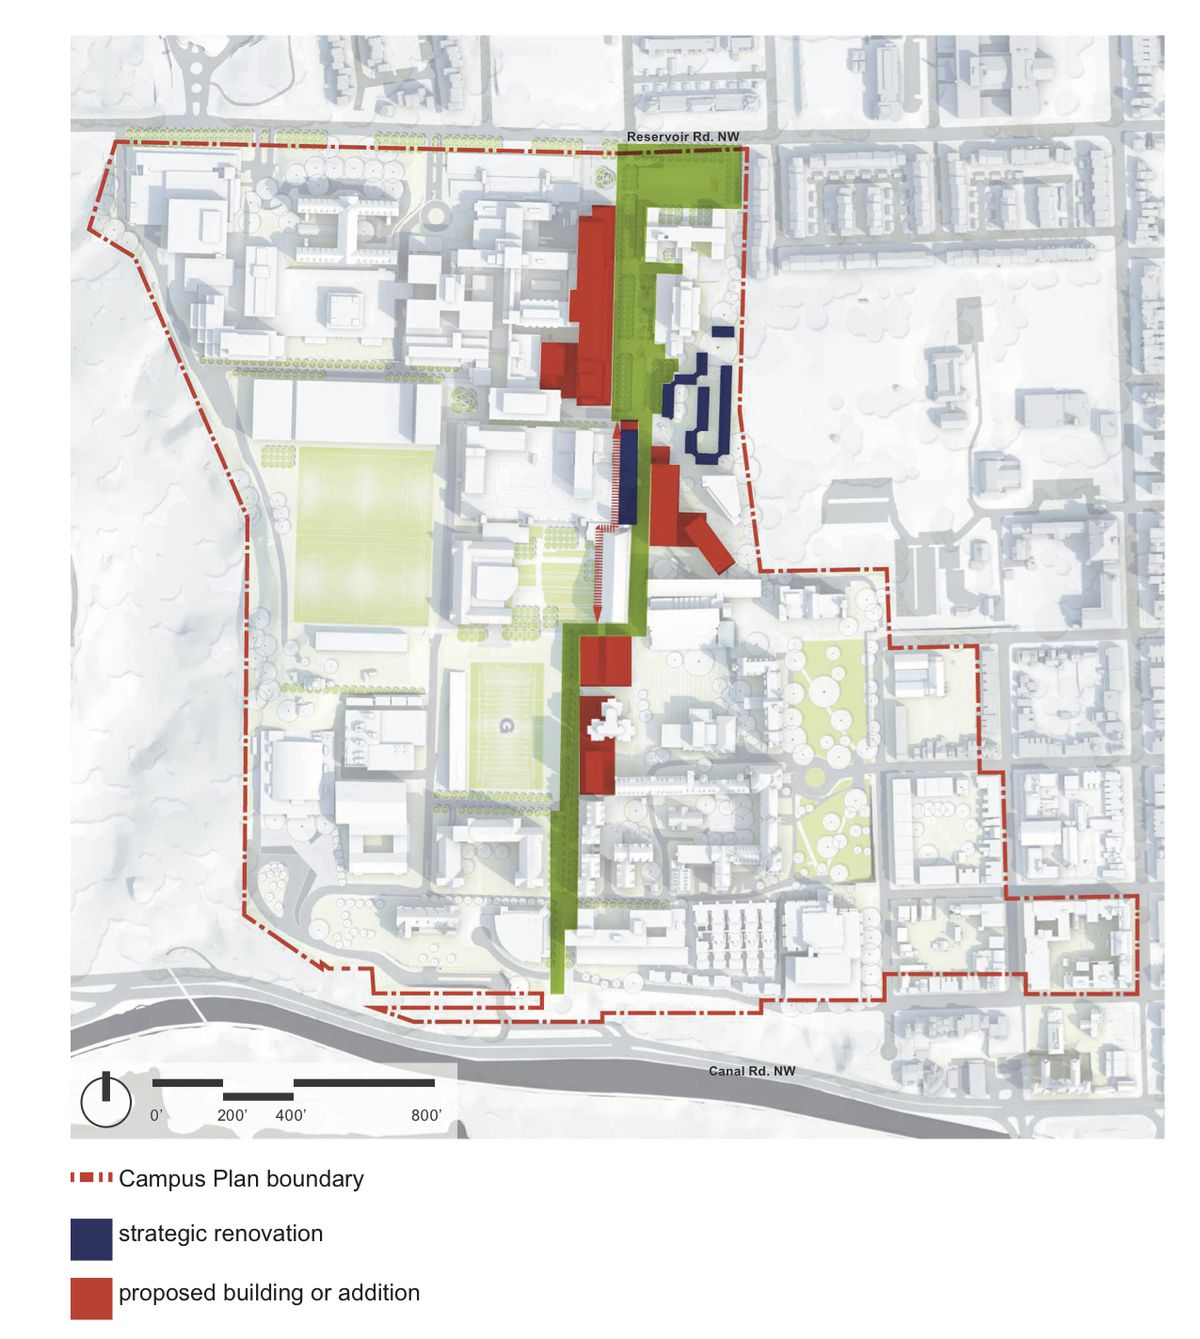 Georgetown University's revised 20-year campus plan ... on old iowa state university map, valley city state university campus map, amherst college campus map, san marcos university campus map, duke university campus map, georgetown medical center map, athabasca university campus map, university of nebraska medical center campus map, charleston campus map, grand view university campus map, university of new mexico campus map, harvard university campus map, dixie university campus map, university of texas at san antonio campus map, howard university campus map, north shore university hospital campus map, city university of new york campus map, southern indiana university campus map, university of new brunswick campus map, university of louisiana at monroe campus map,